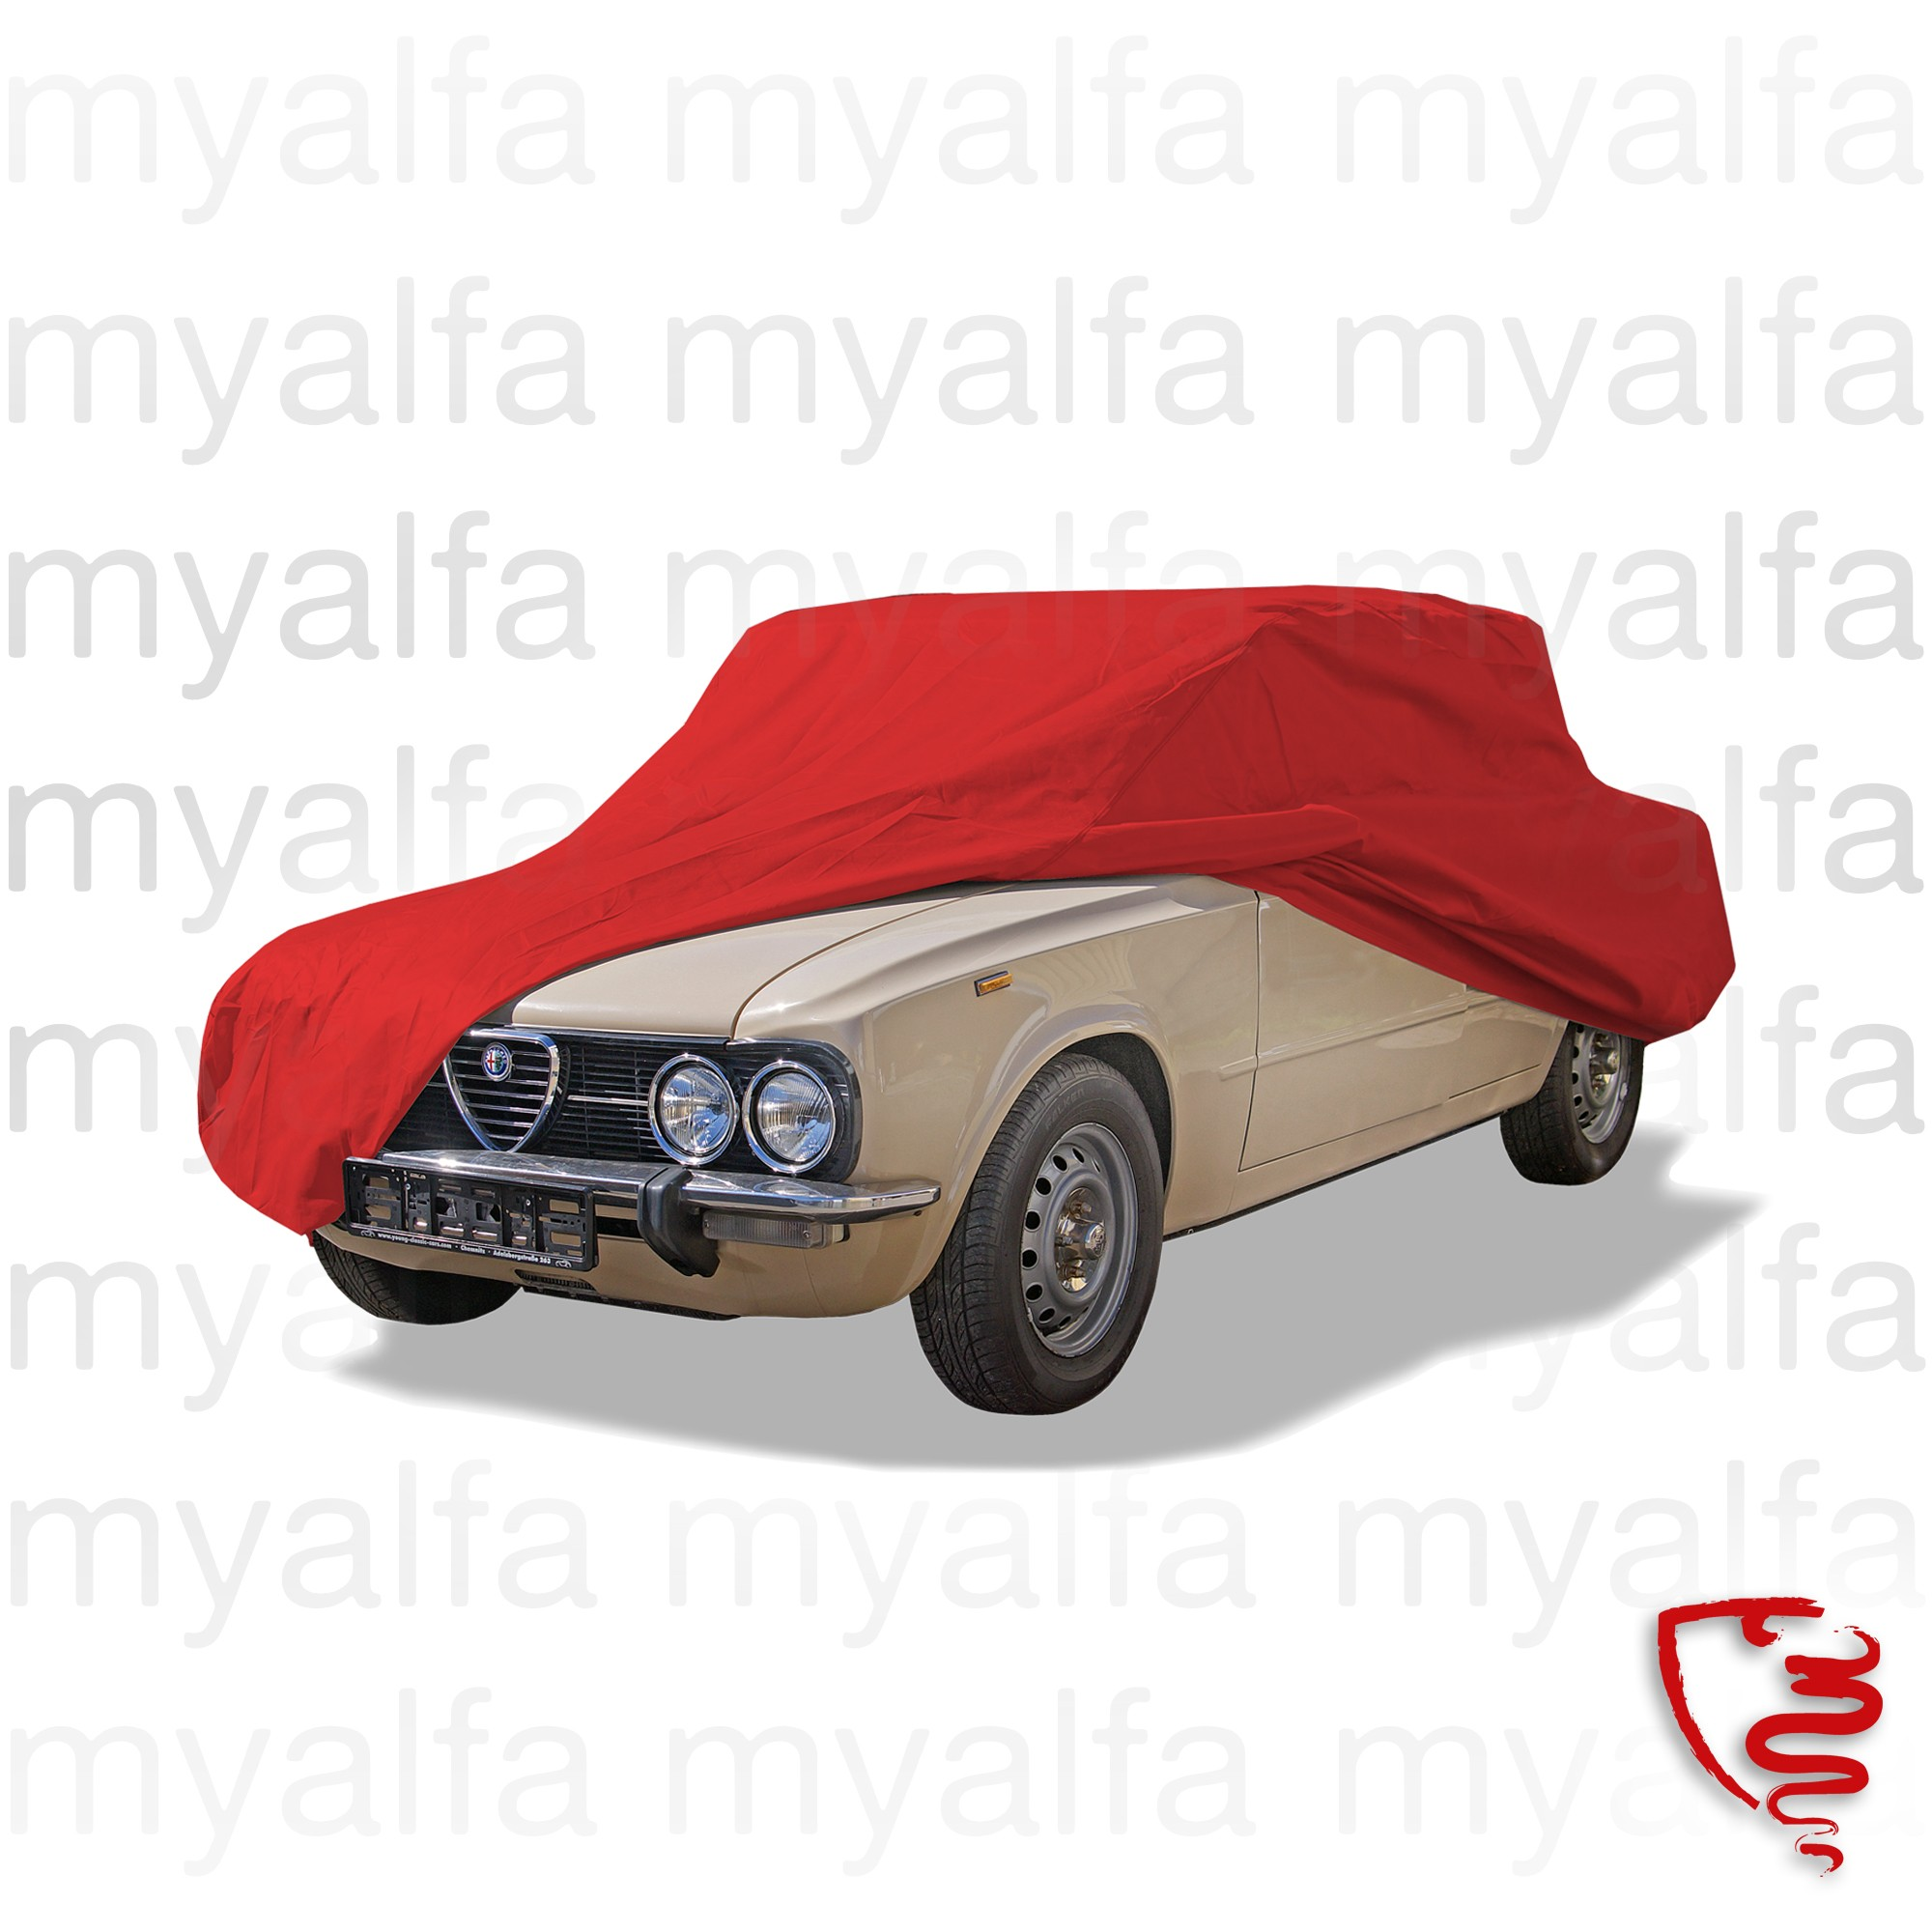 Alfa Romeo CAR COVER GIULIA Redsize Measures Xx M - Alfa romeo car cover